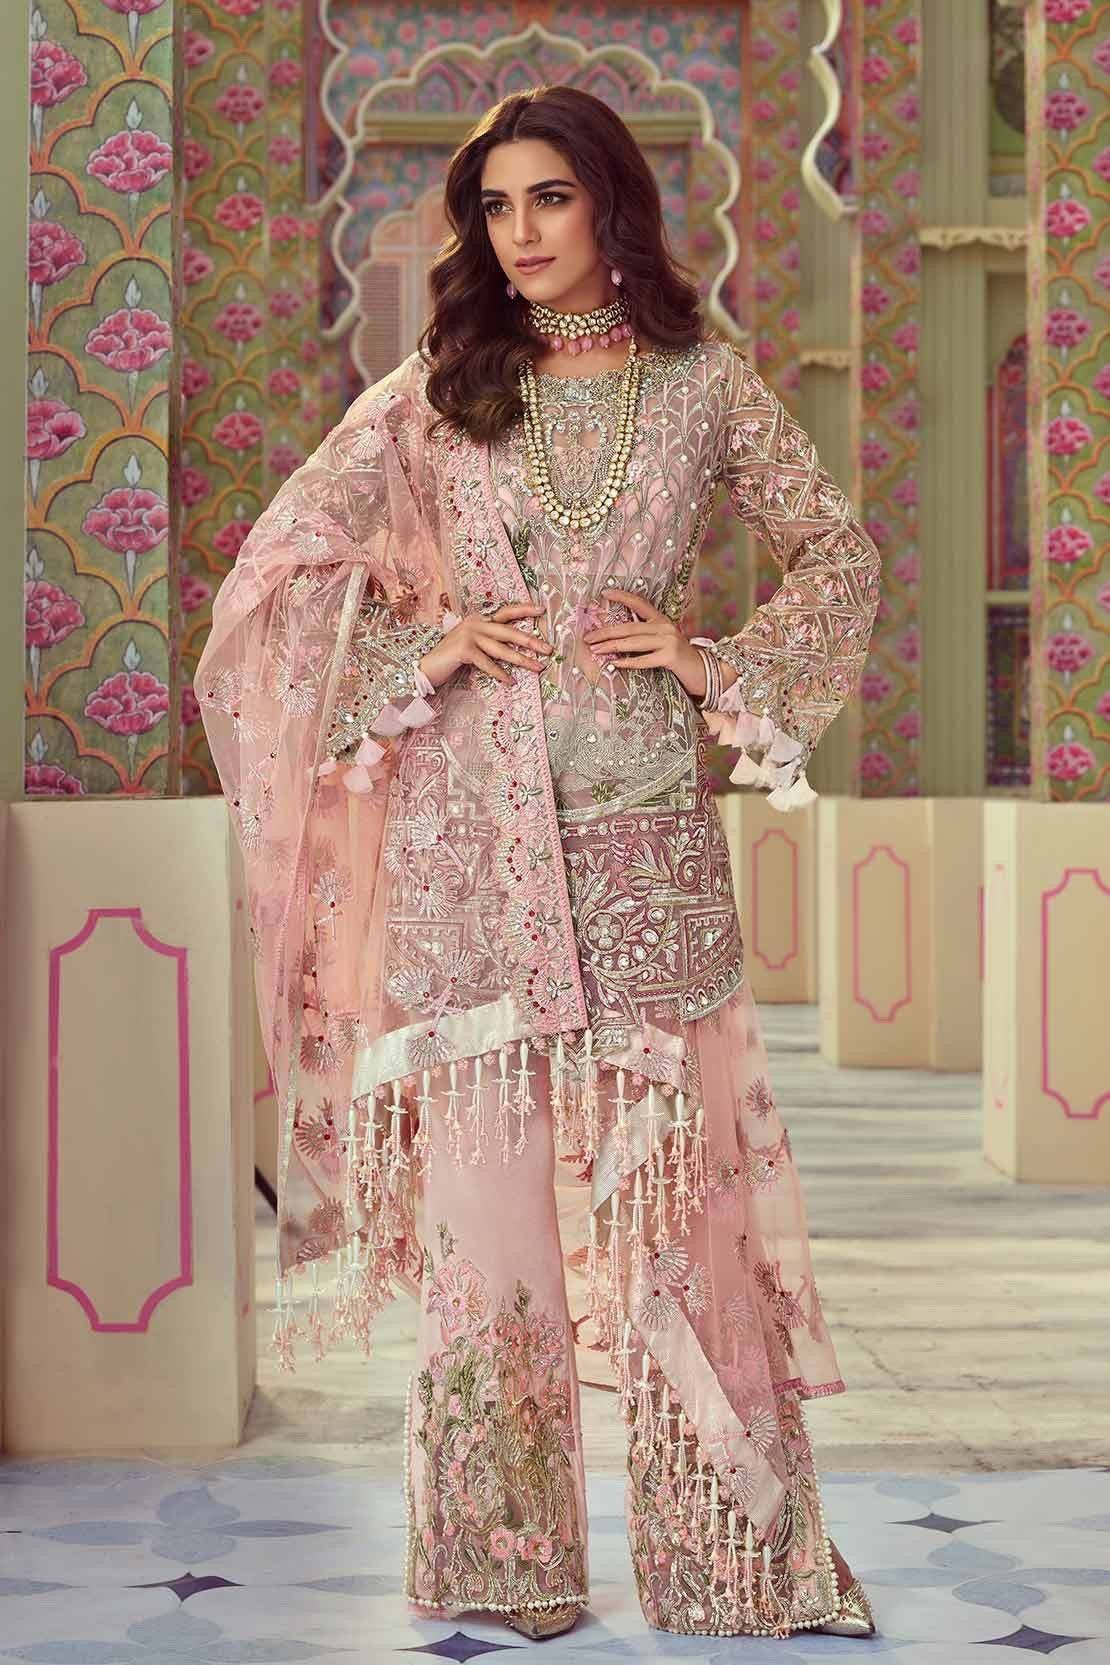 Crimson D4-Heavy Embroided 3pc unstiched pure chiffon dress with embroided chiffon dupatta. - gracestore.pk